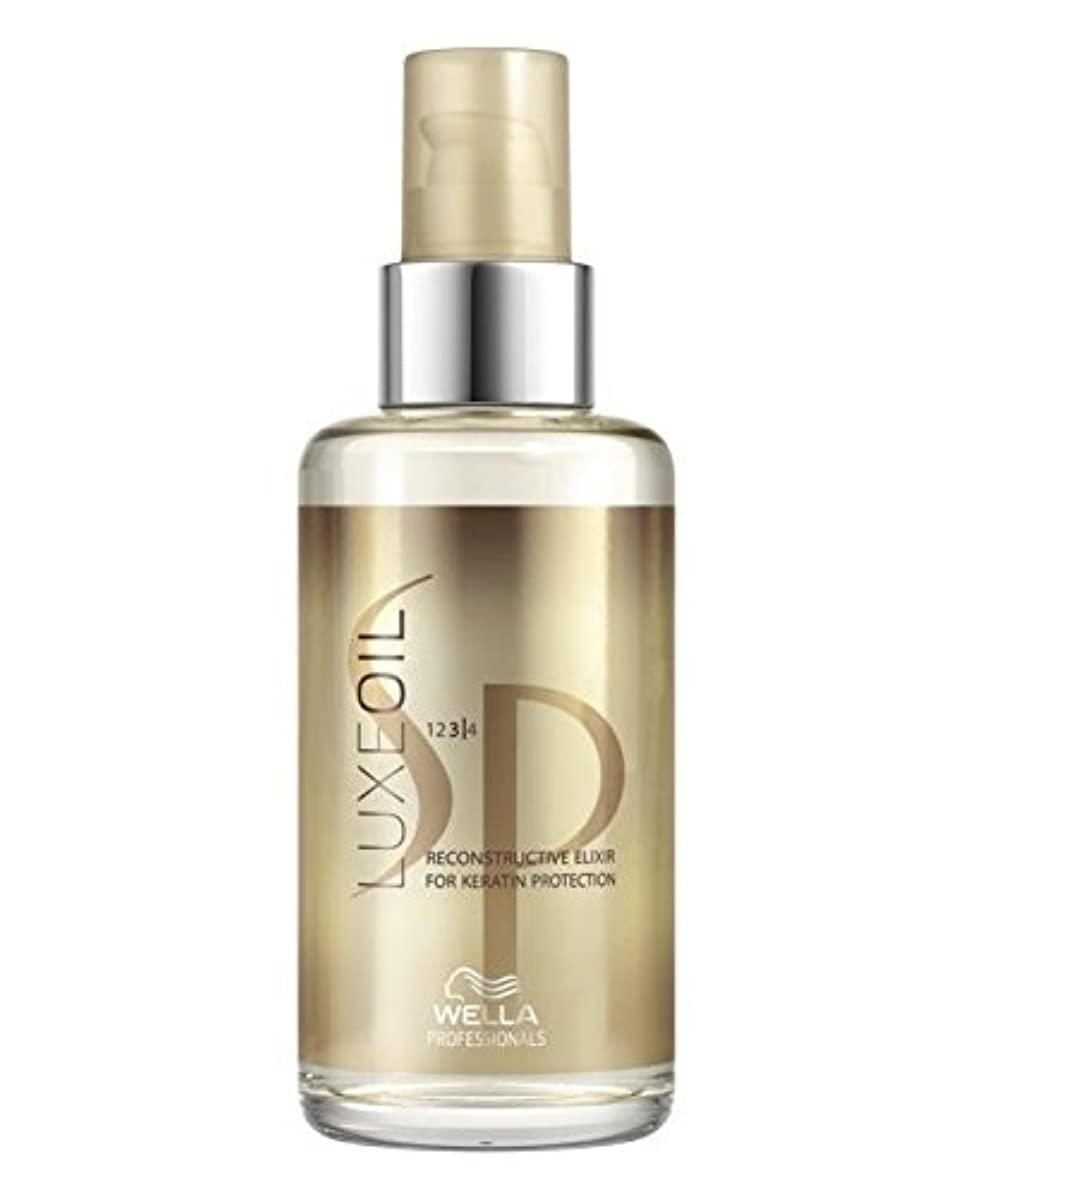 世界観察する遮るSP by Wella Luxe Hair Oil Reconstructive Elixir 100ml by Wella [並行輸入品]